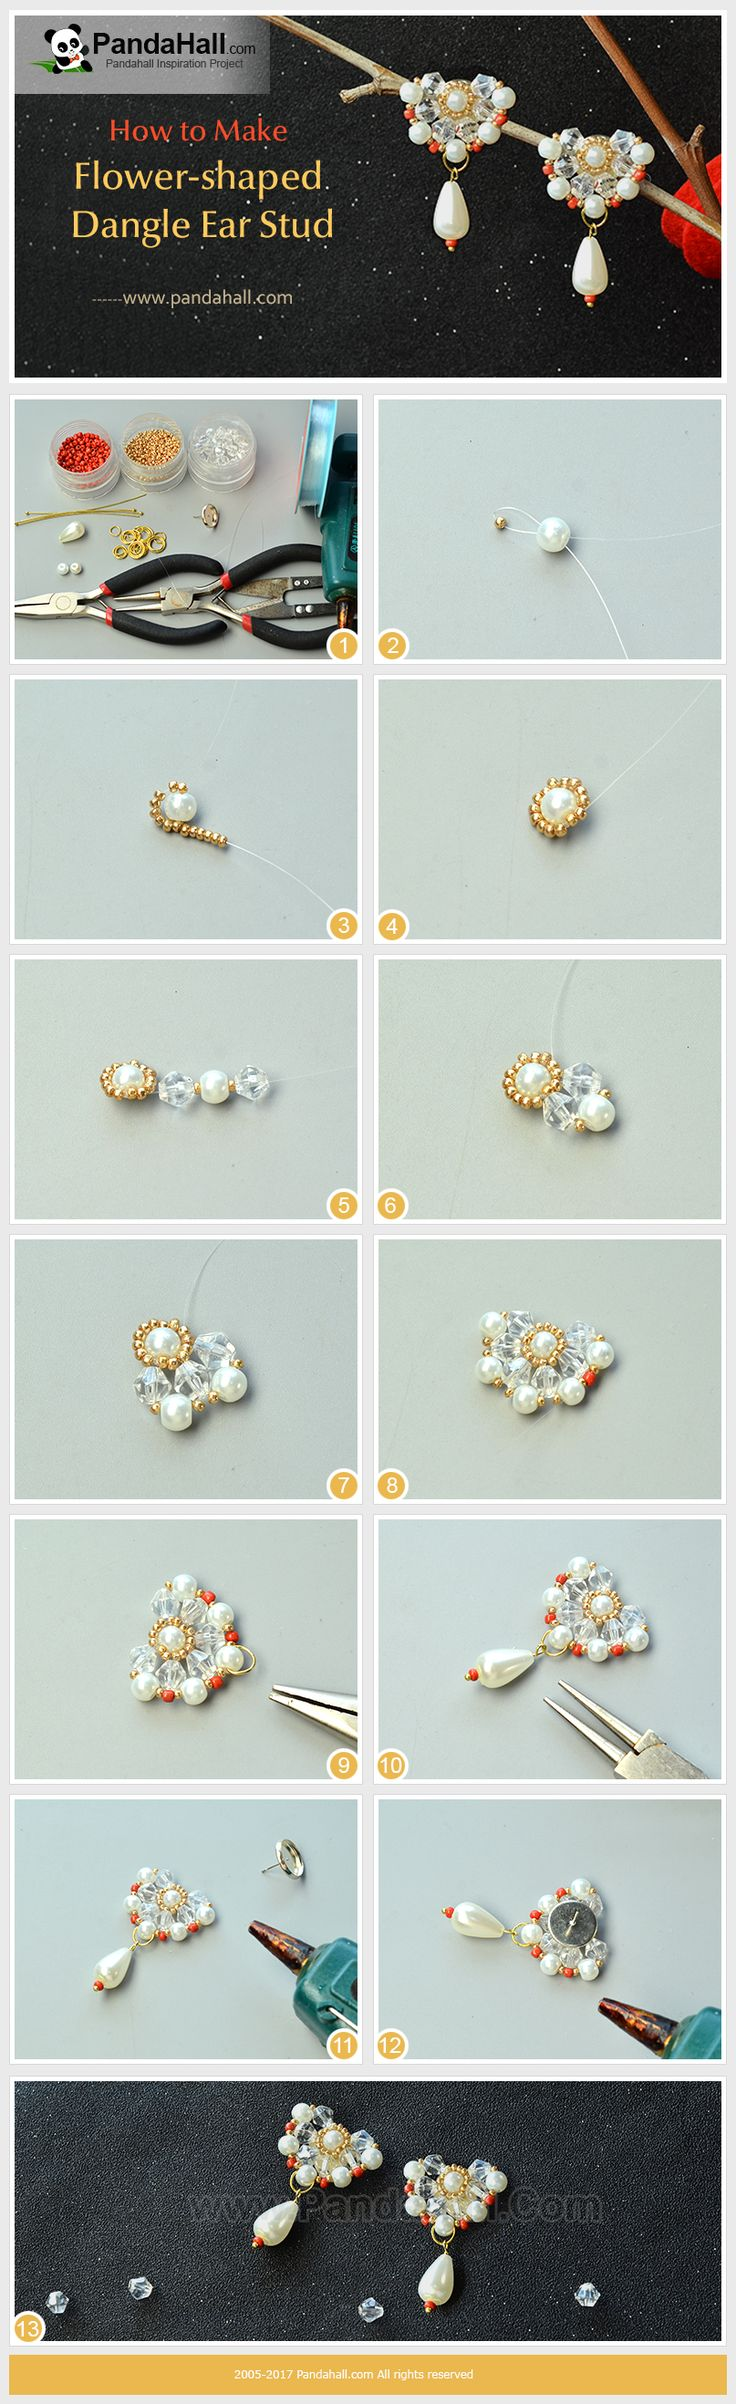 How to Make Flower-shaped Dangle Ear Stud With pearl beads, glass beads and seed beads, thread them into flower shape and stick a ear stud setting, and finally you will get a pair of exquisite earrings!